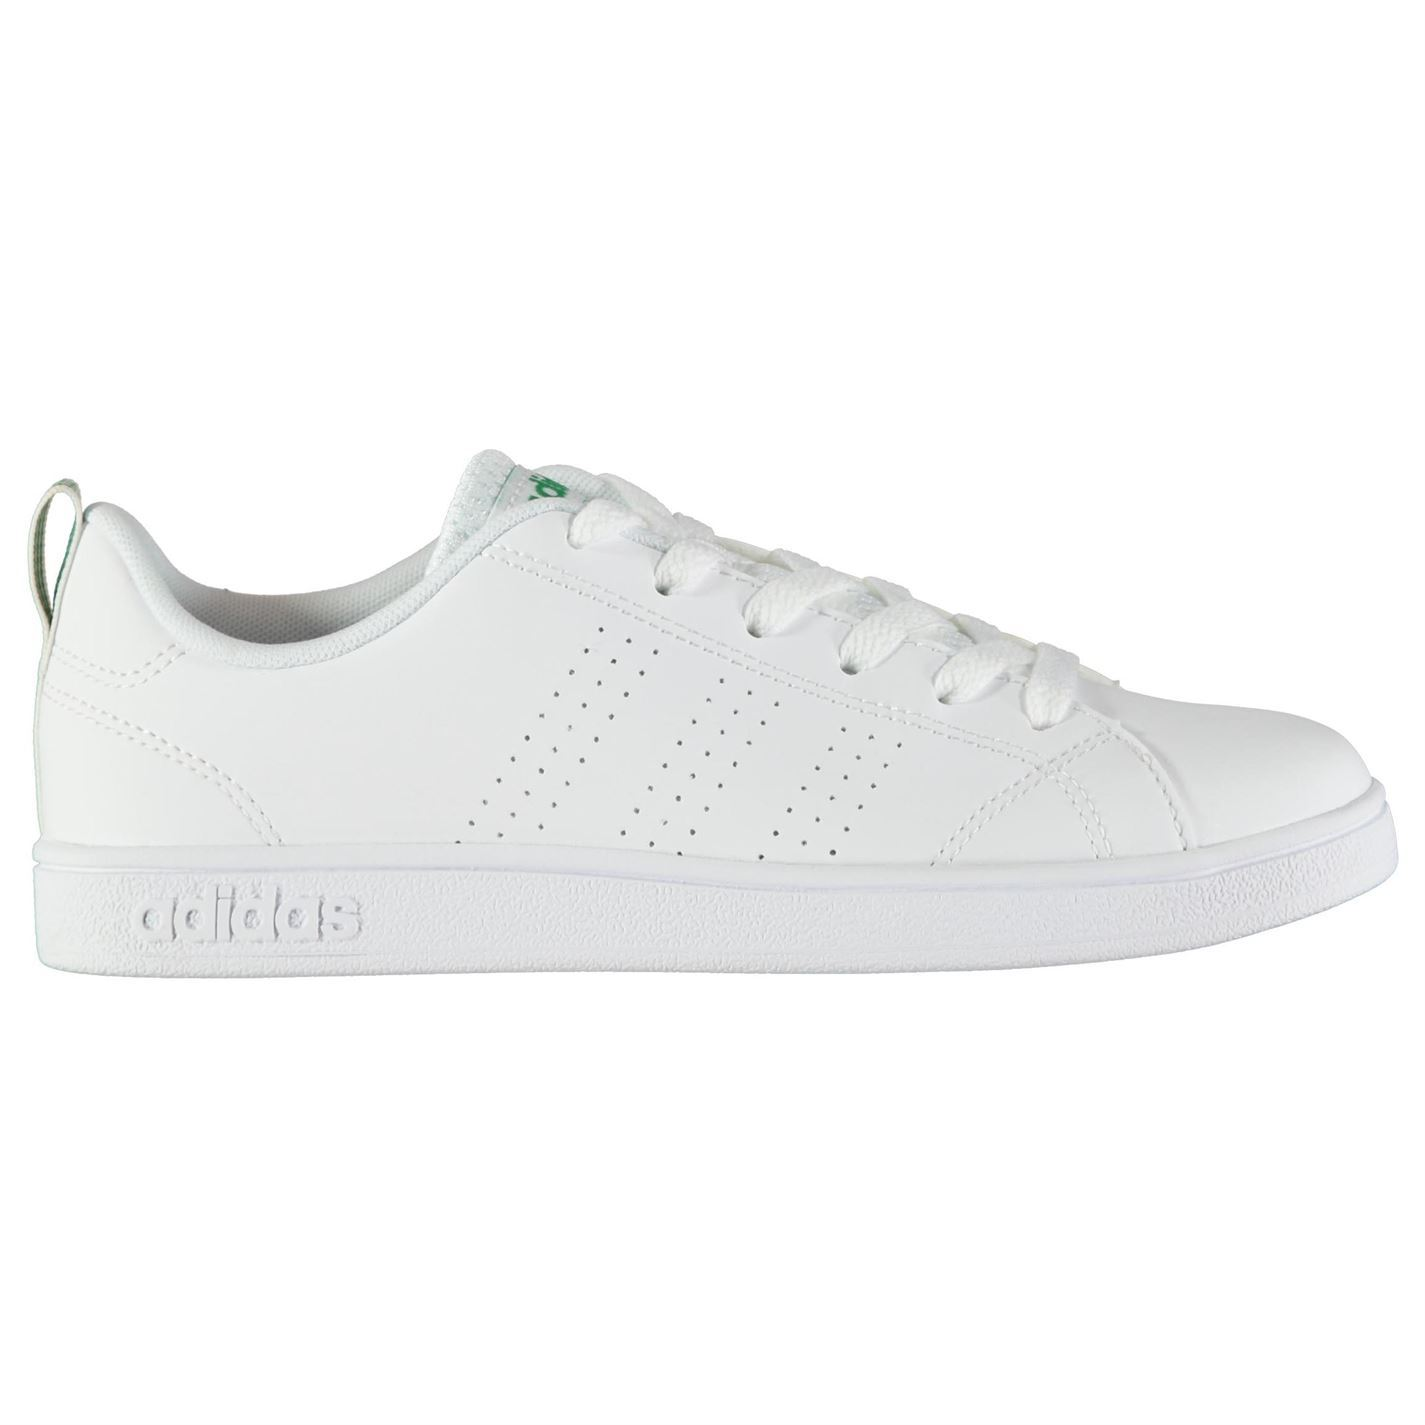 adidas Advantage Clean Boys Trainers White Green Shoes Footwear  20fbffe8e